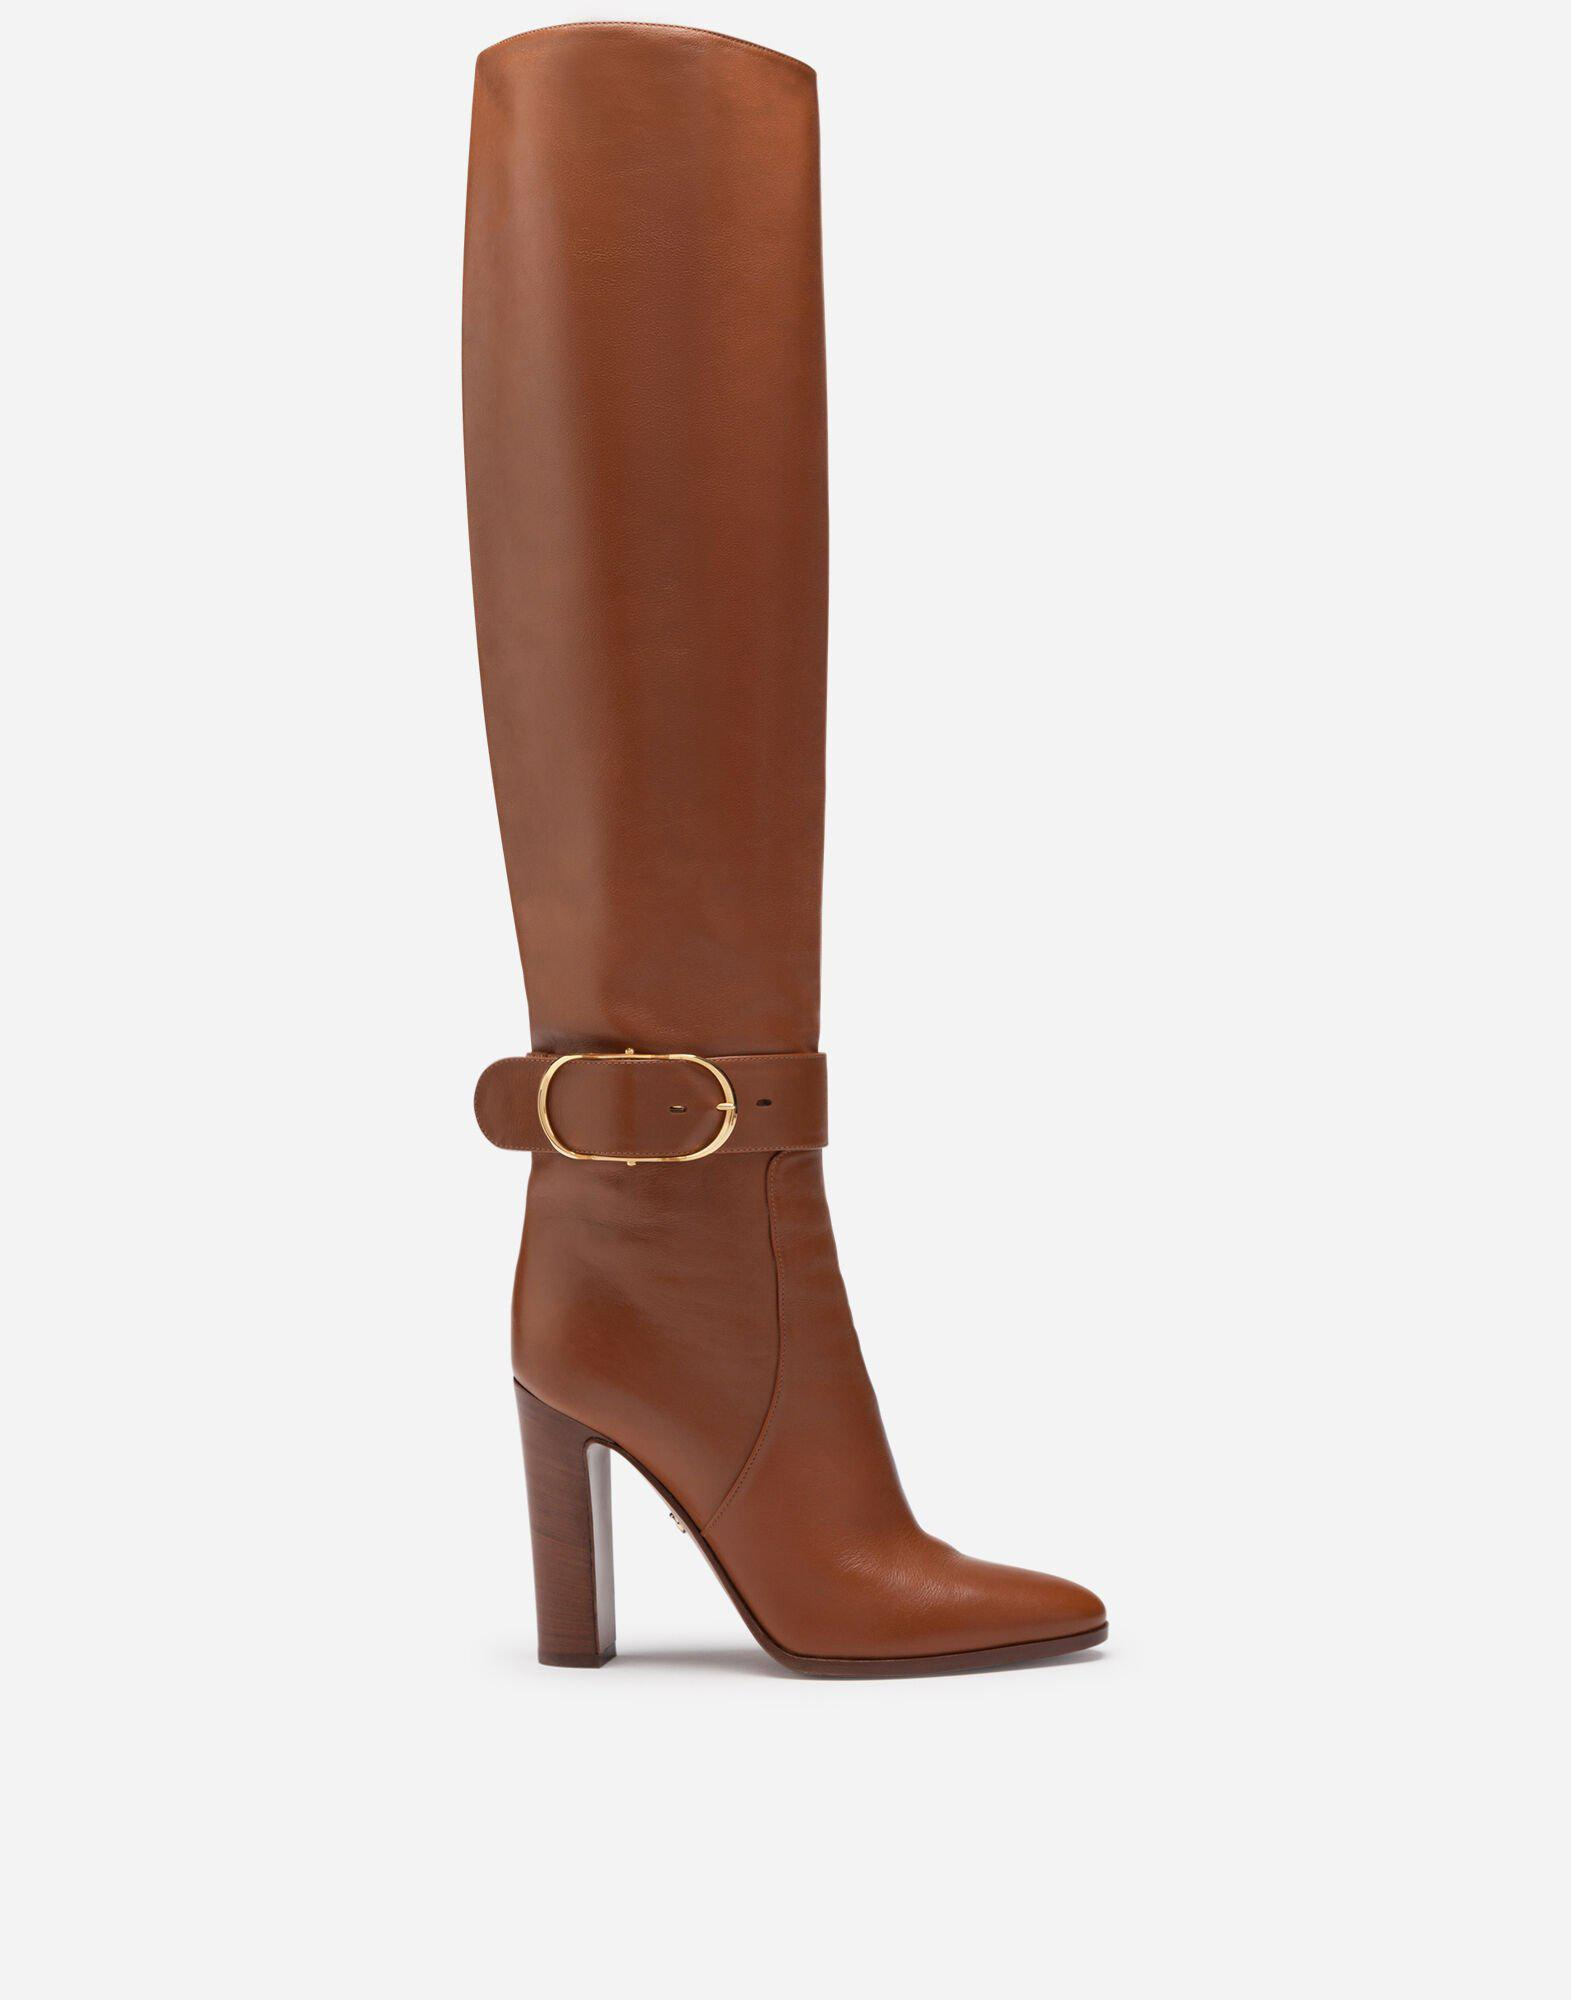 Boots in foulard calfskin with decorative buckle 0